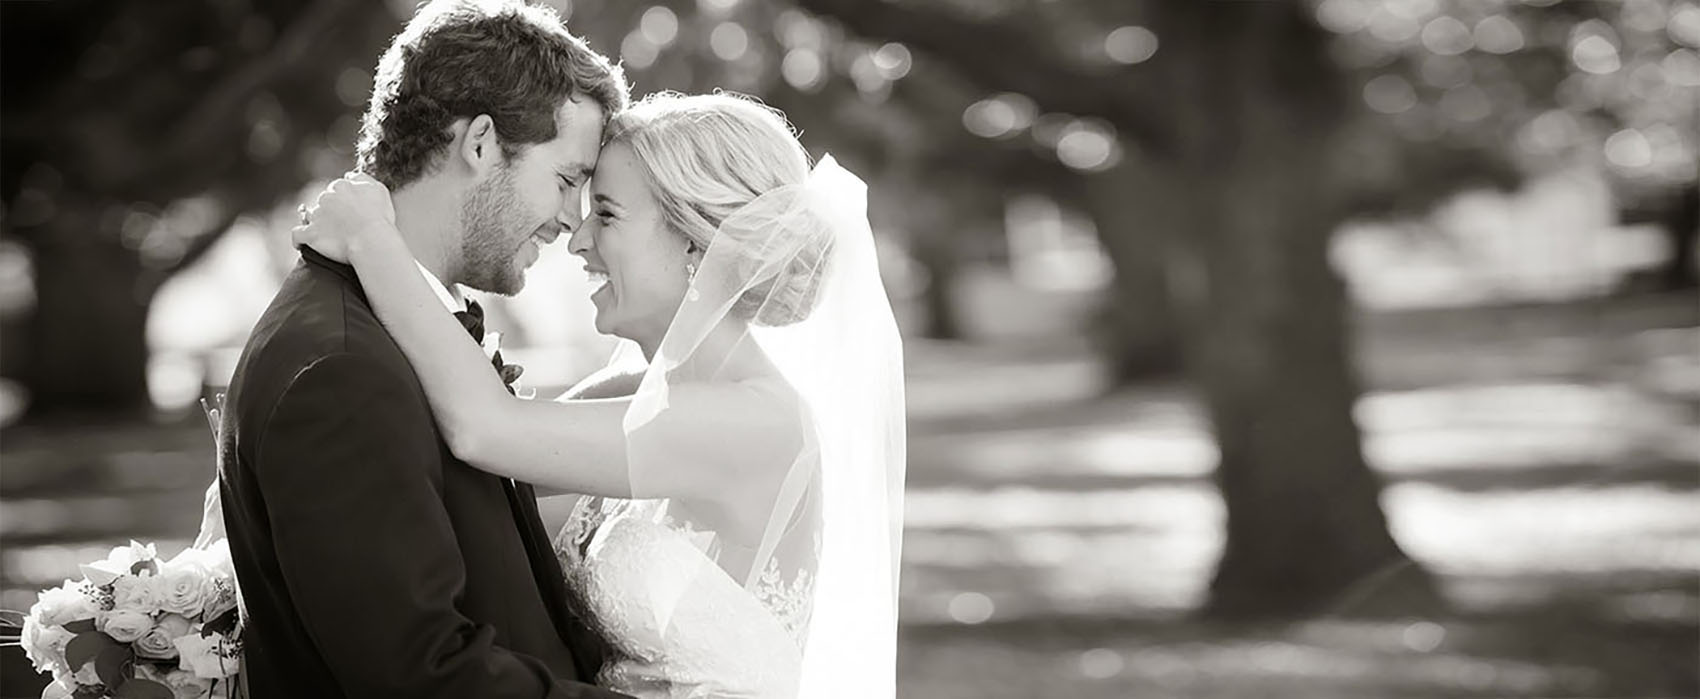 The bride and grooming hug and laugh in this black and white toned photo.